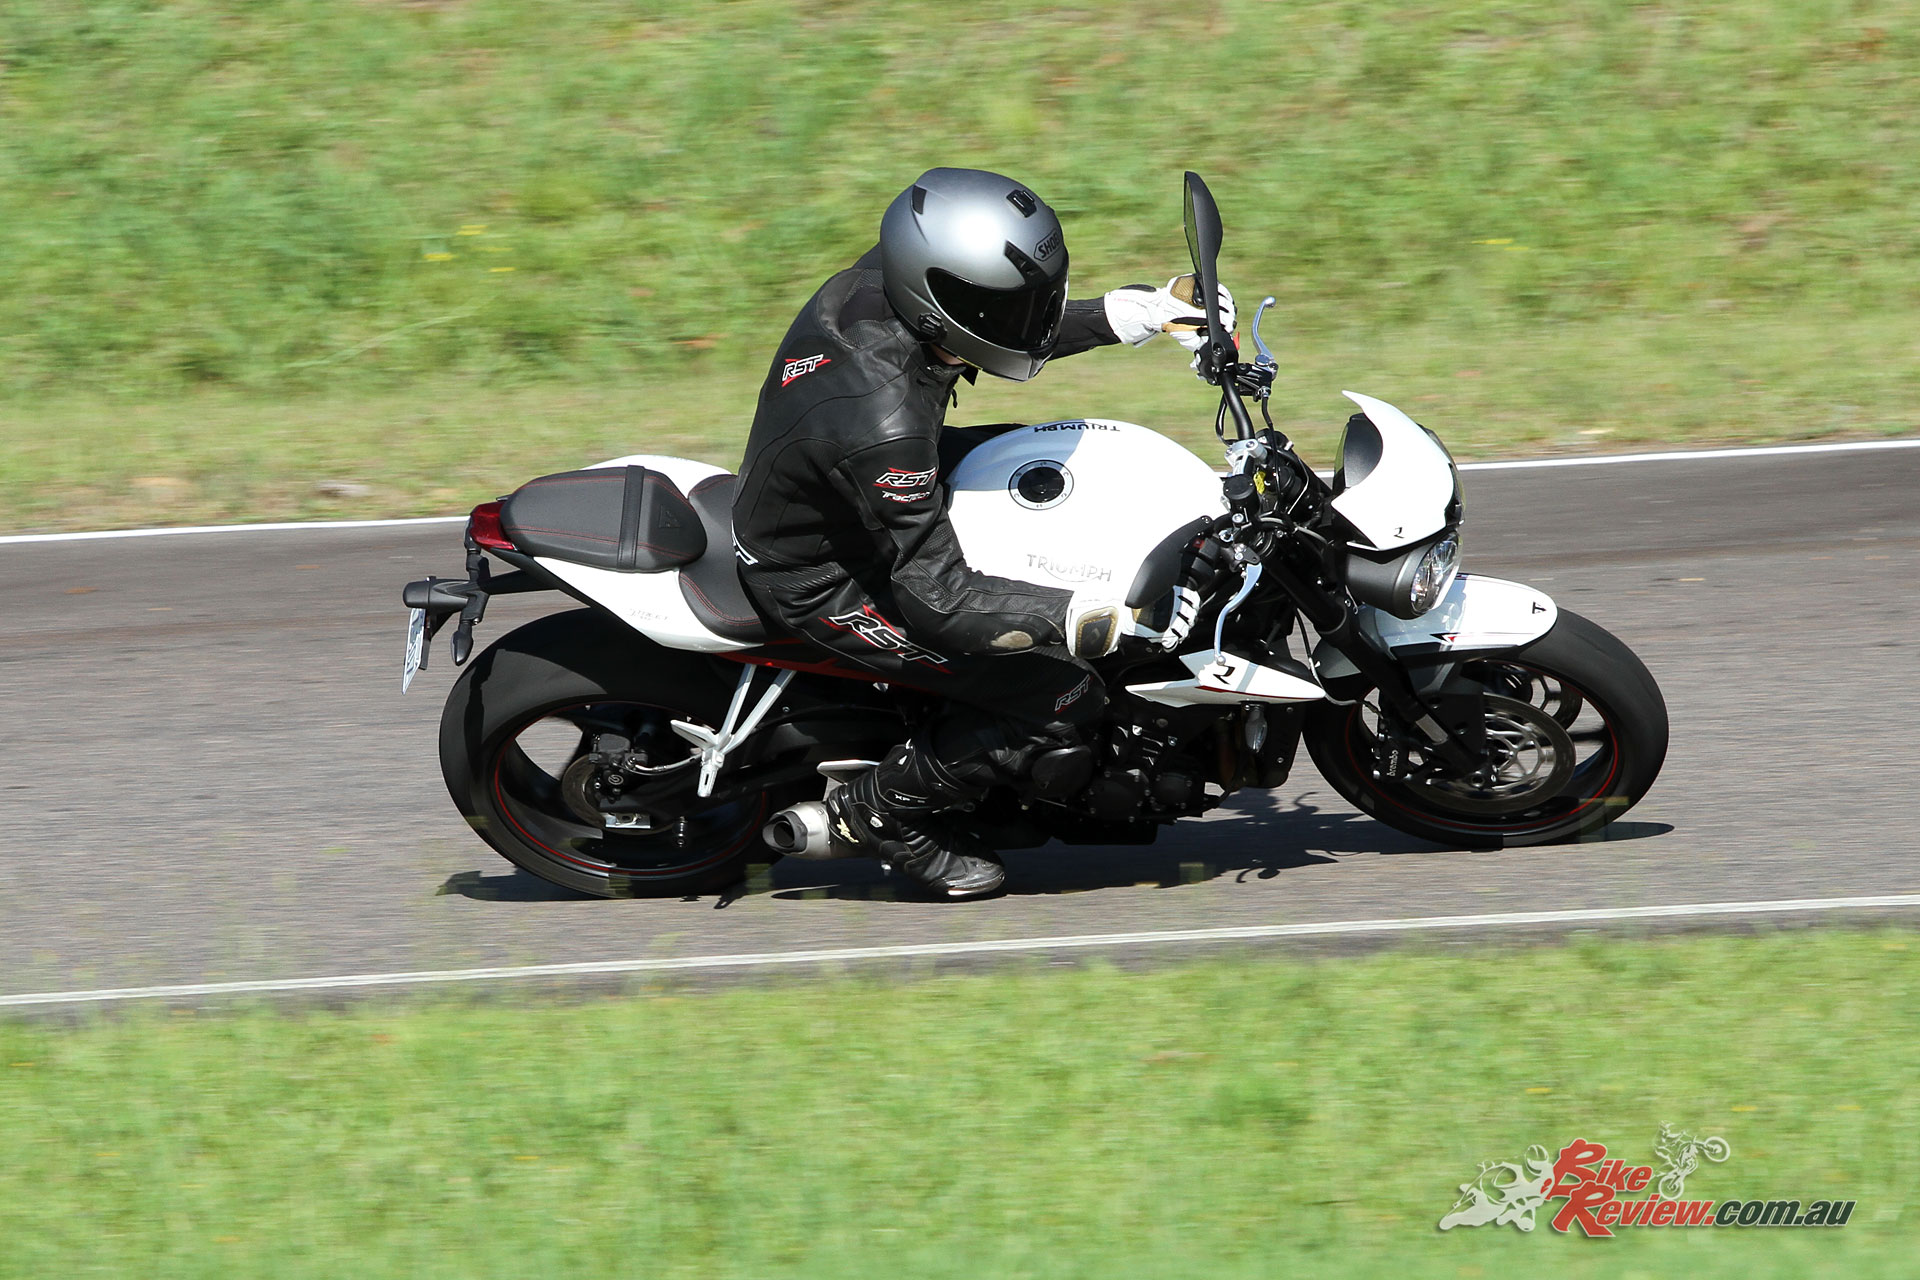 There's little that hasn't been significantly upgraded over the outgoing Street Triple R.